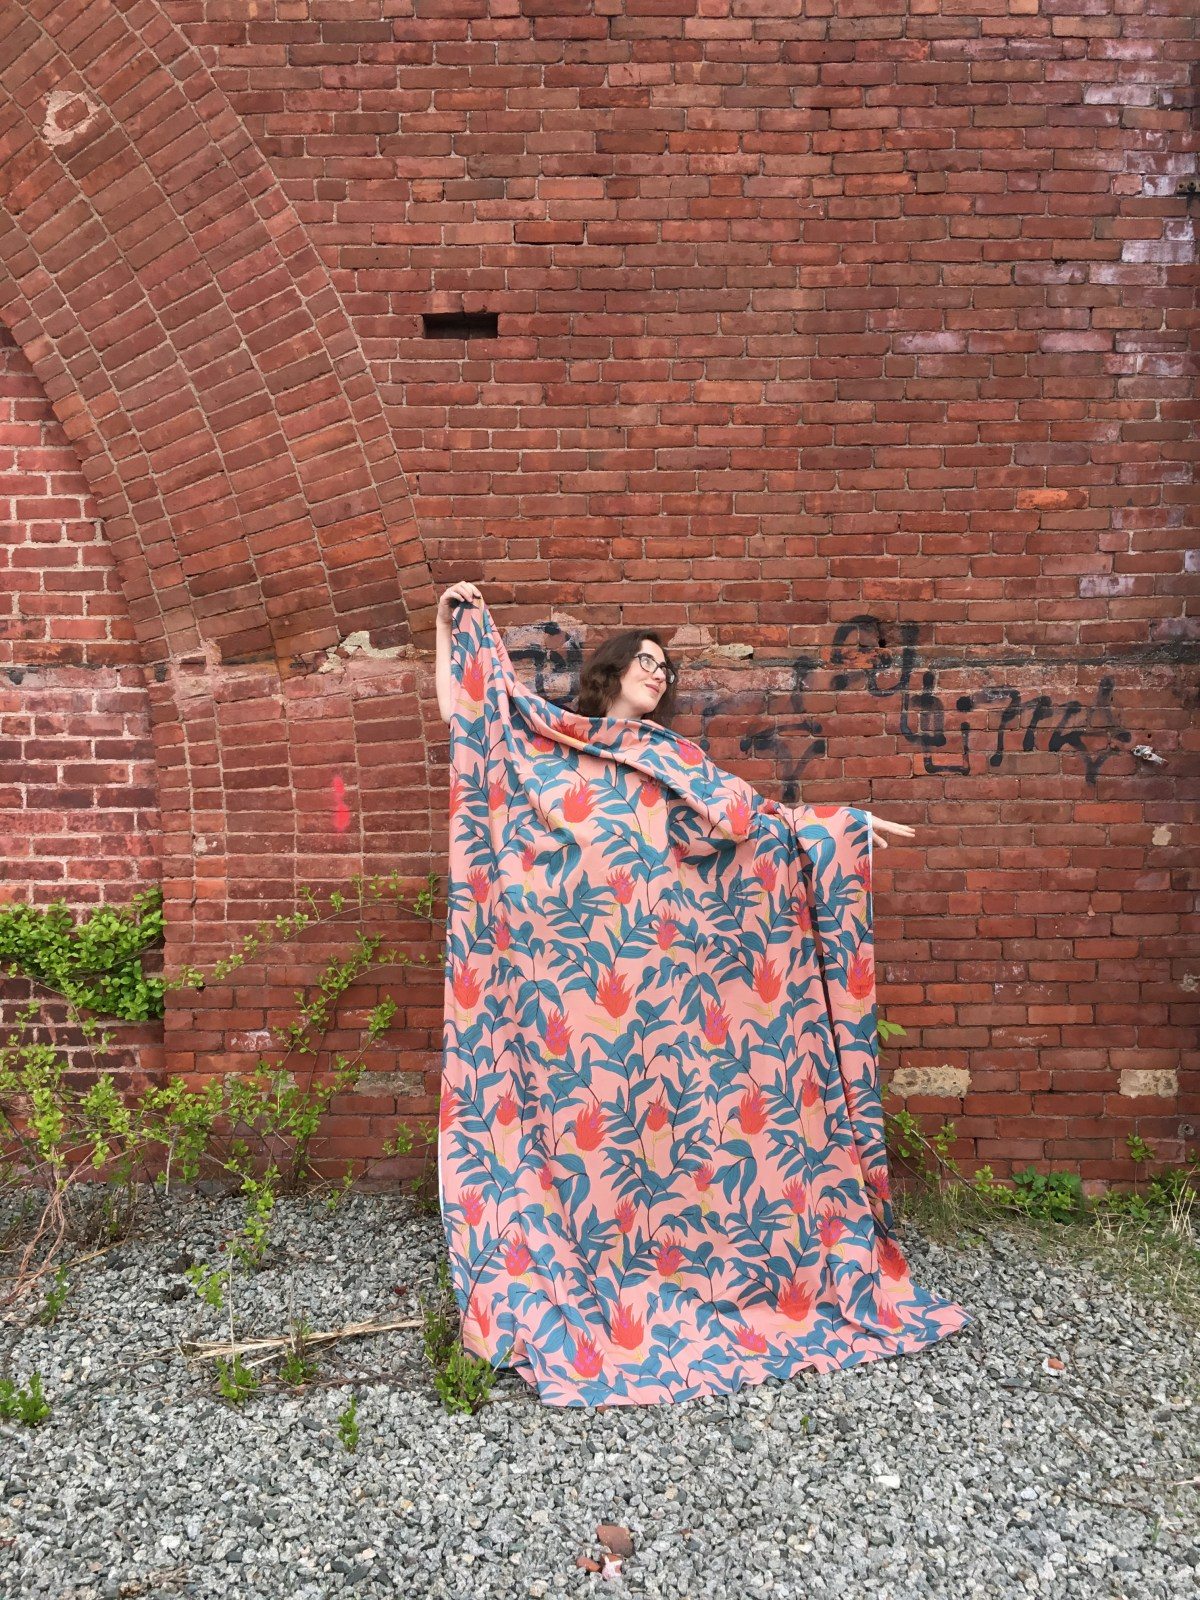 Author of post against a brick wall with light pink fabric with a large-scale red and green floral motif draped over her body